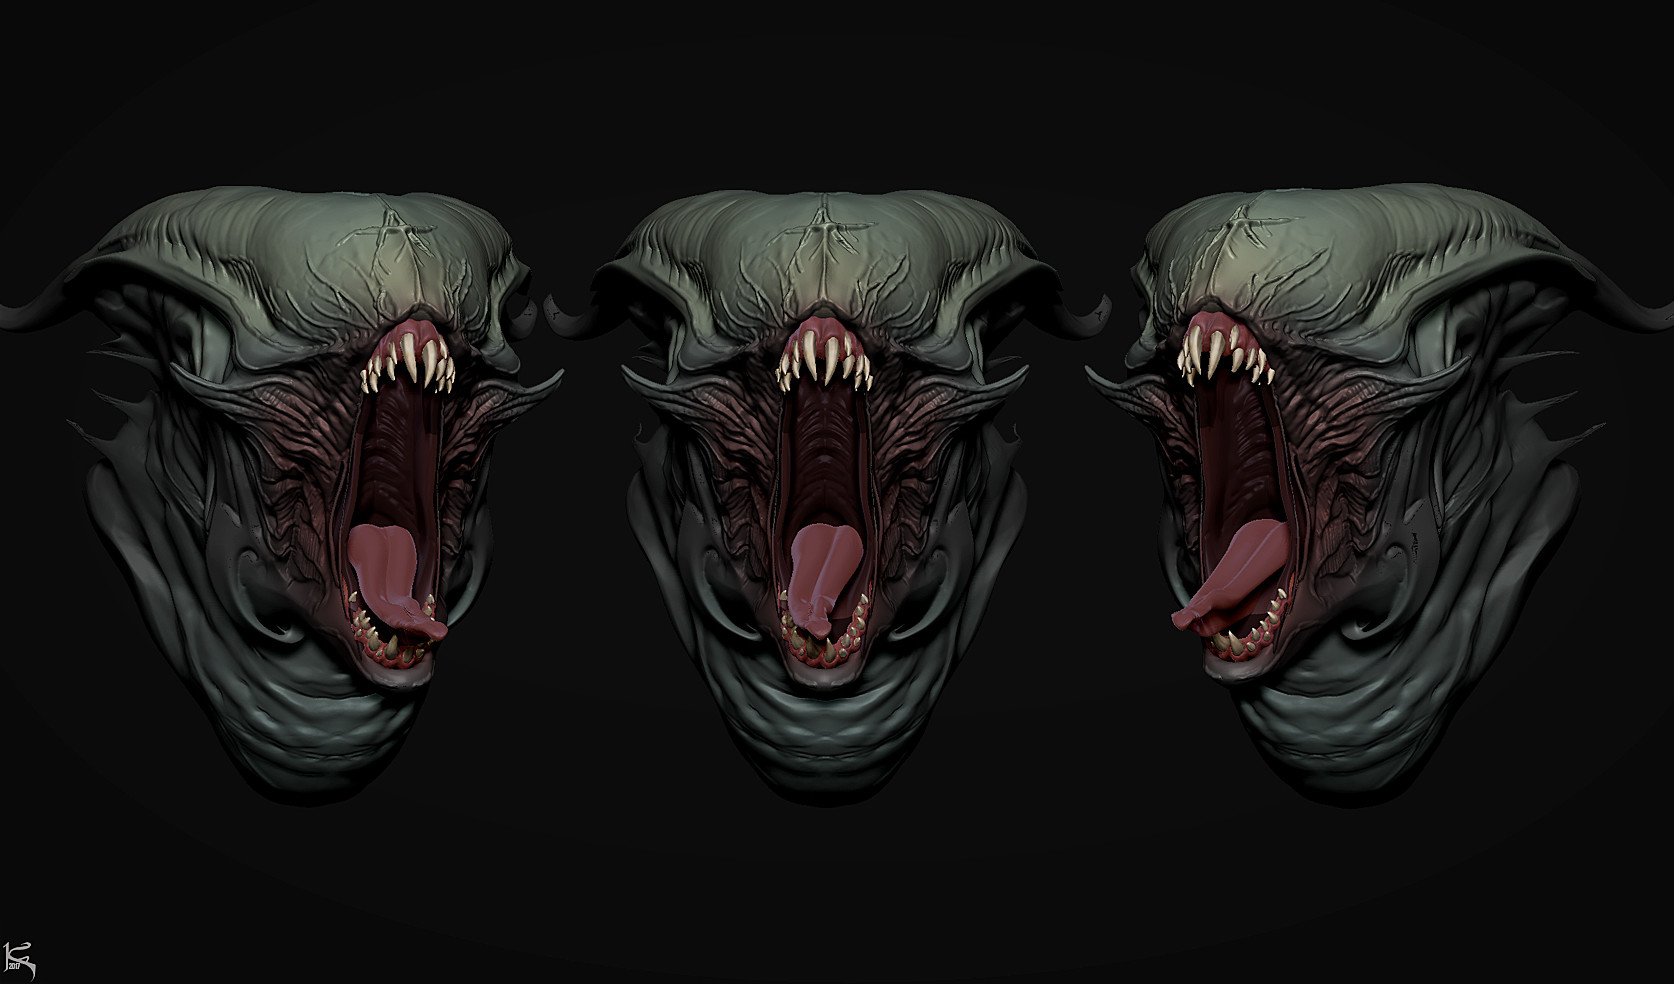 kenny-carmody-creature60-zbrush-screengrab-1001.jpg